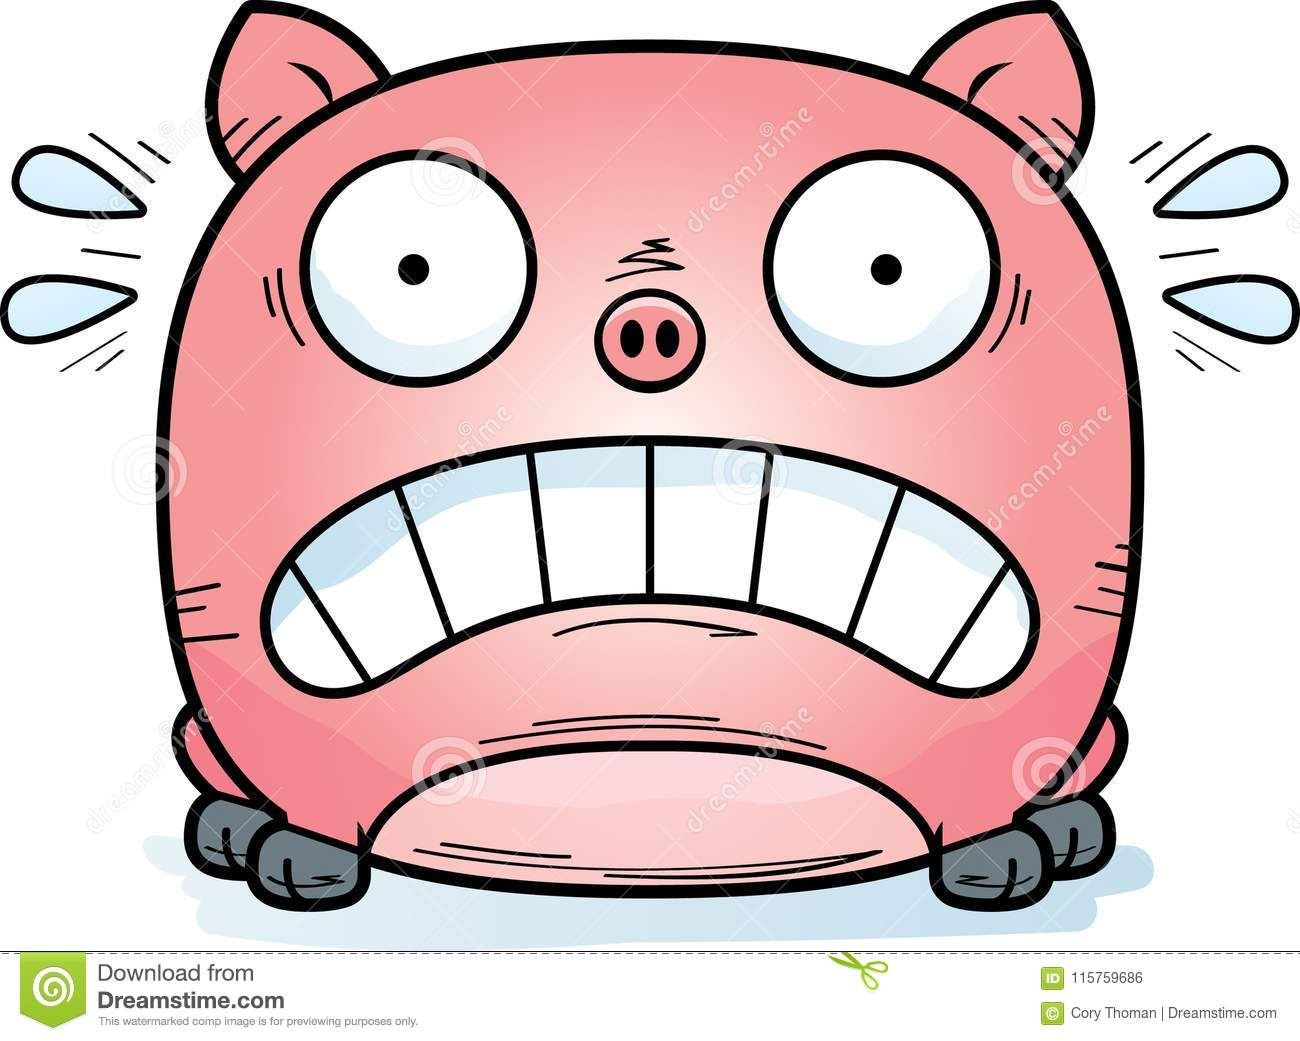 Terrified Little Pig stock vector. Illustration of afraid - 115759686